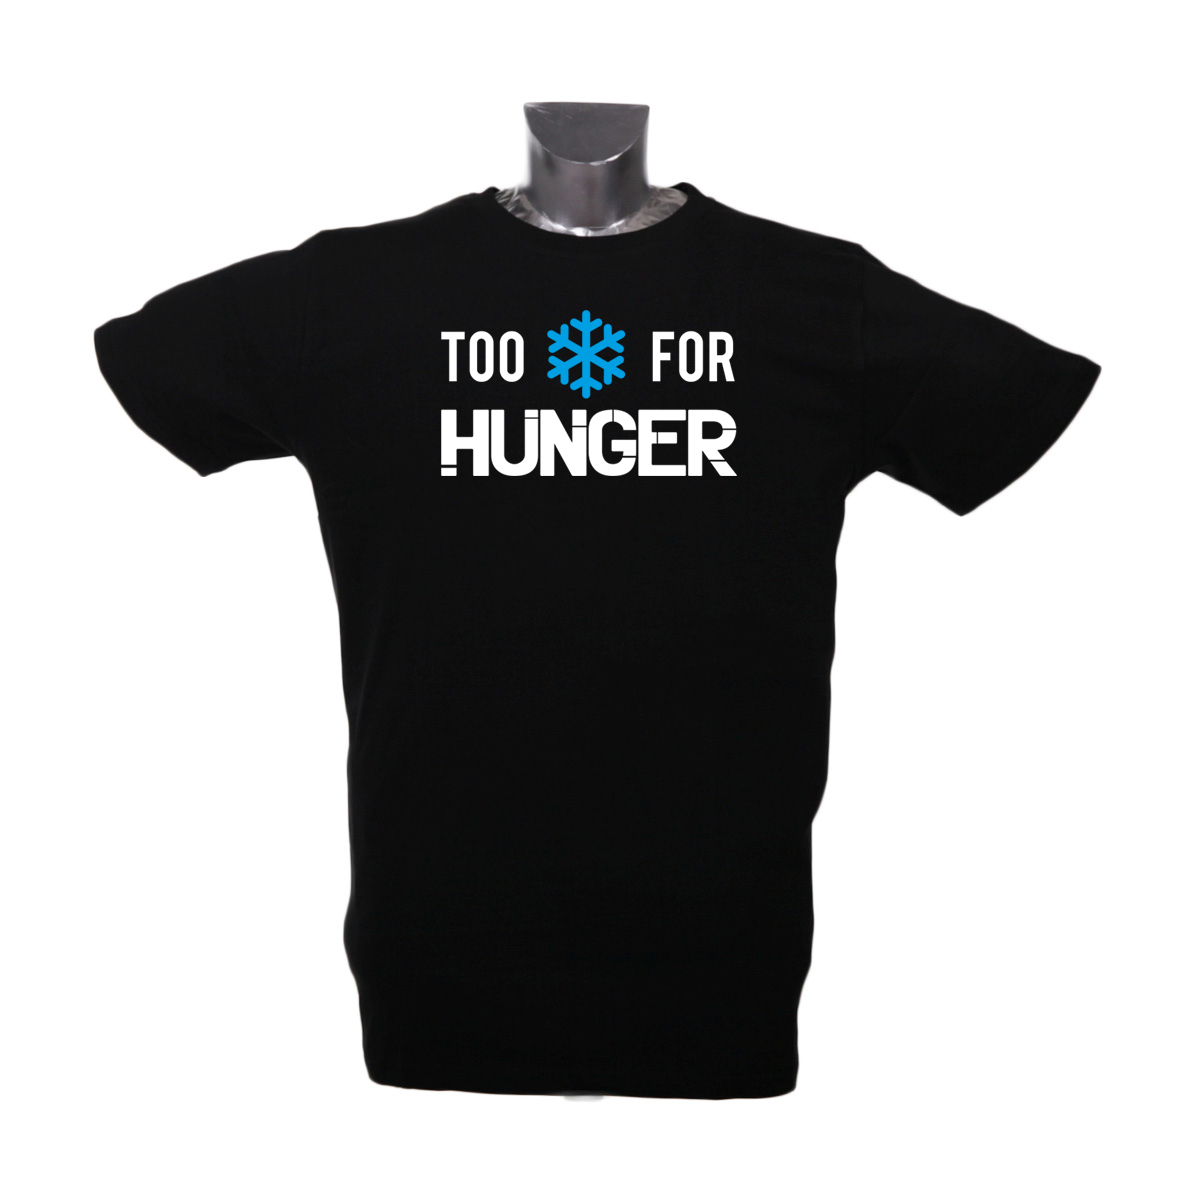 Xxl shirt too cool for hunger xxl t shirts und mehr von for Too cool t shirts